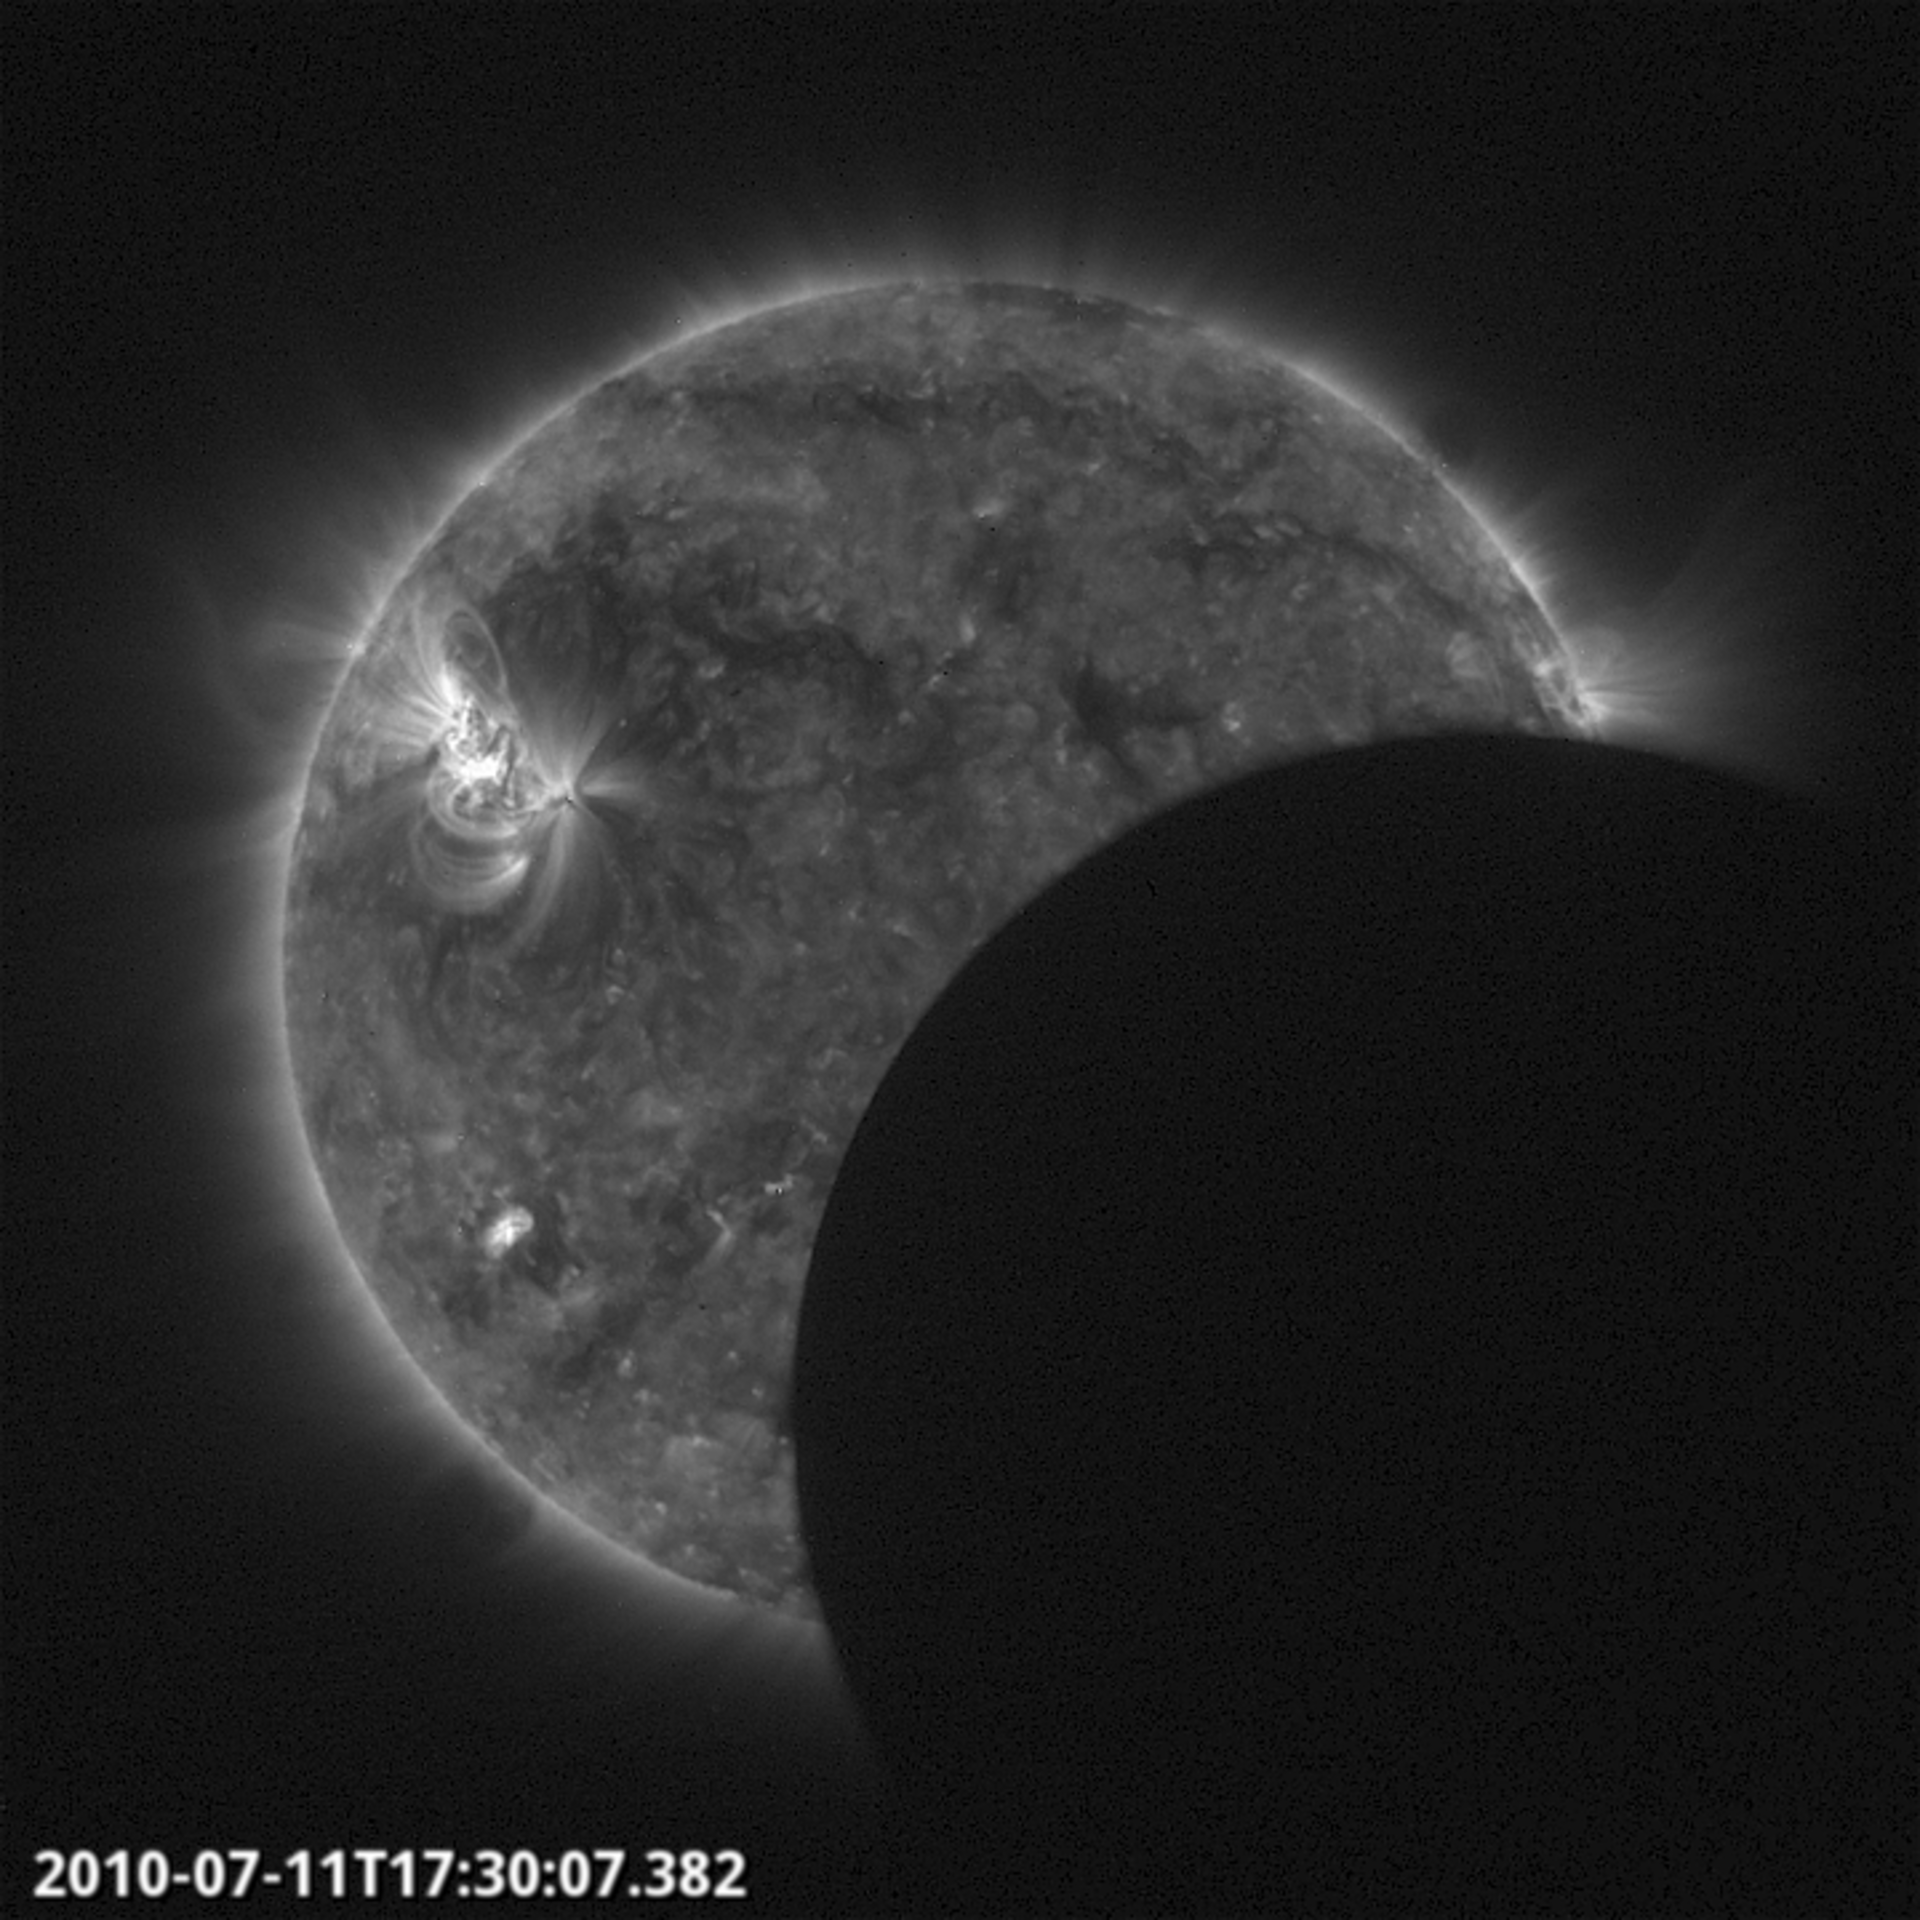 Proba-2 partial eclipse